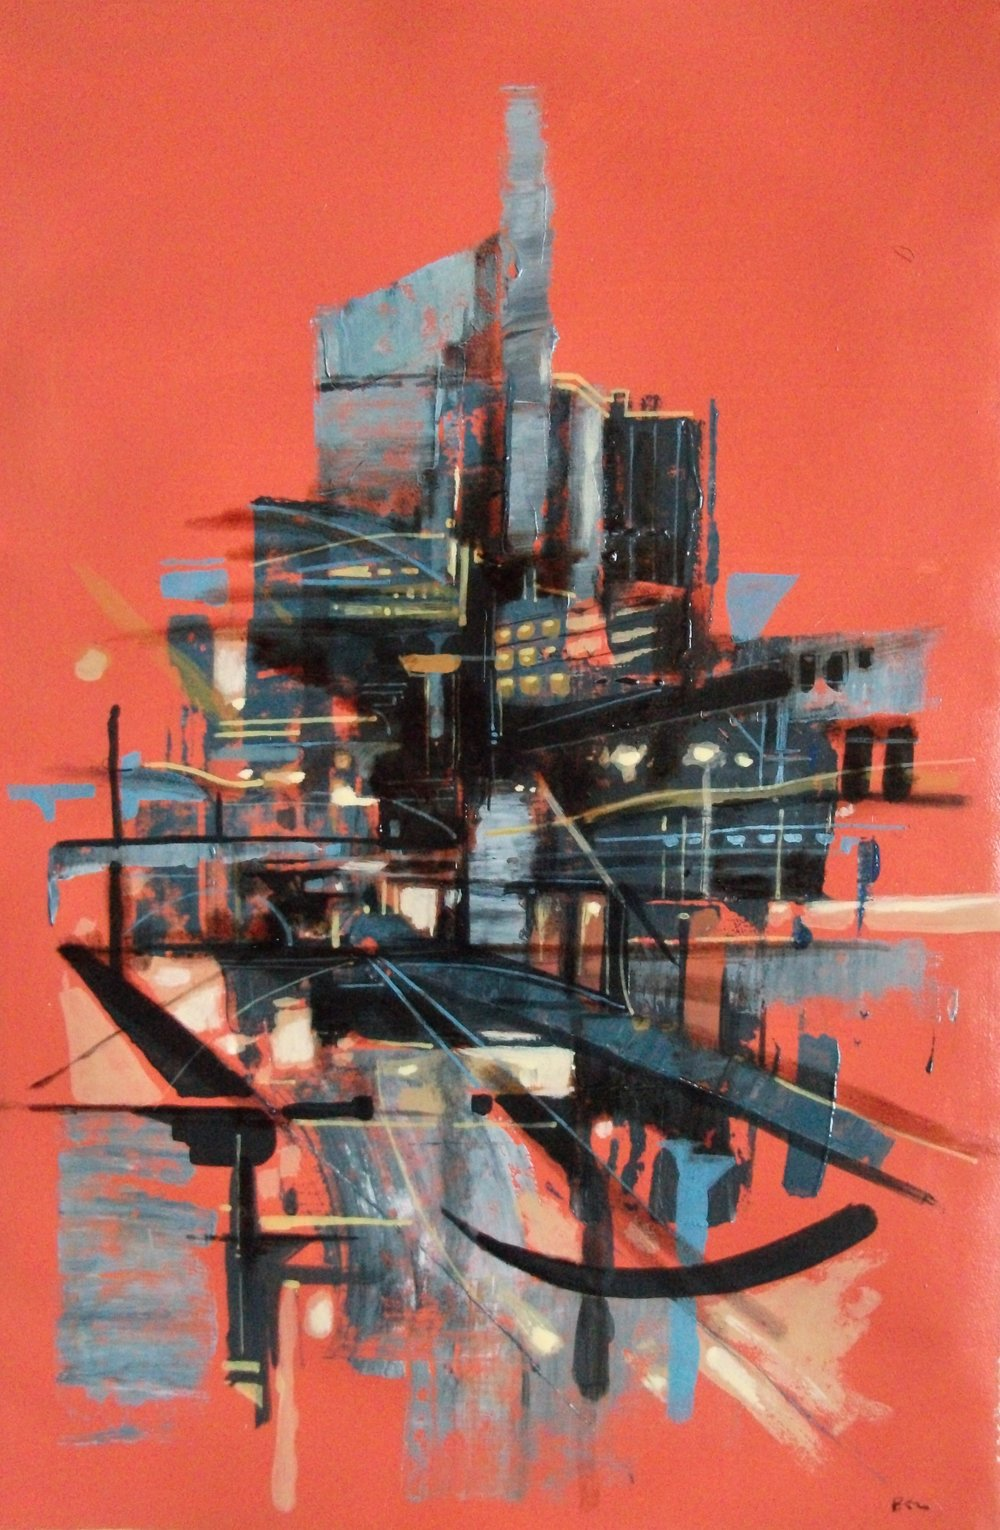 "'Cityscape IV' ,  Code no. 2625   Acrylics & Mixed Media on Paper with Oil Glazing, 18"" x 12"""